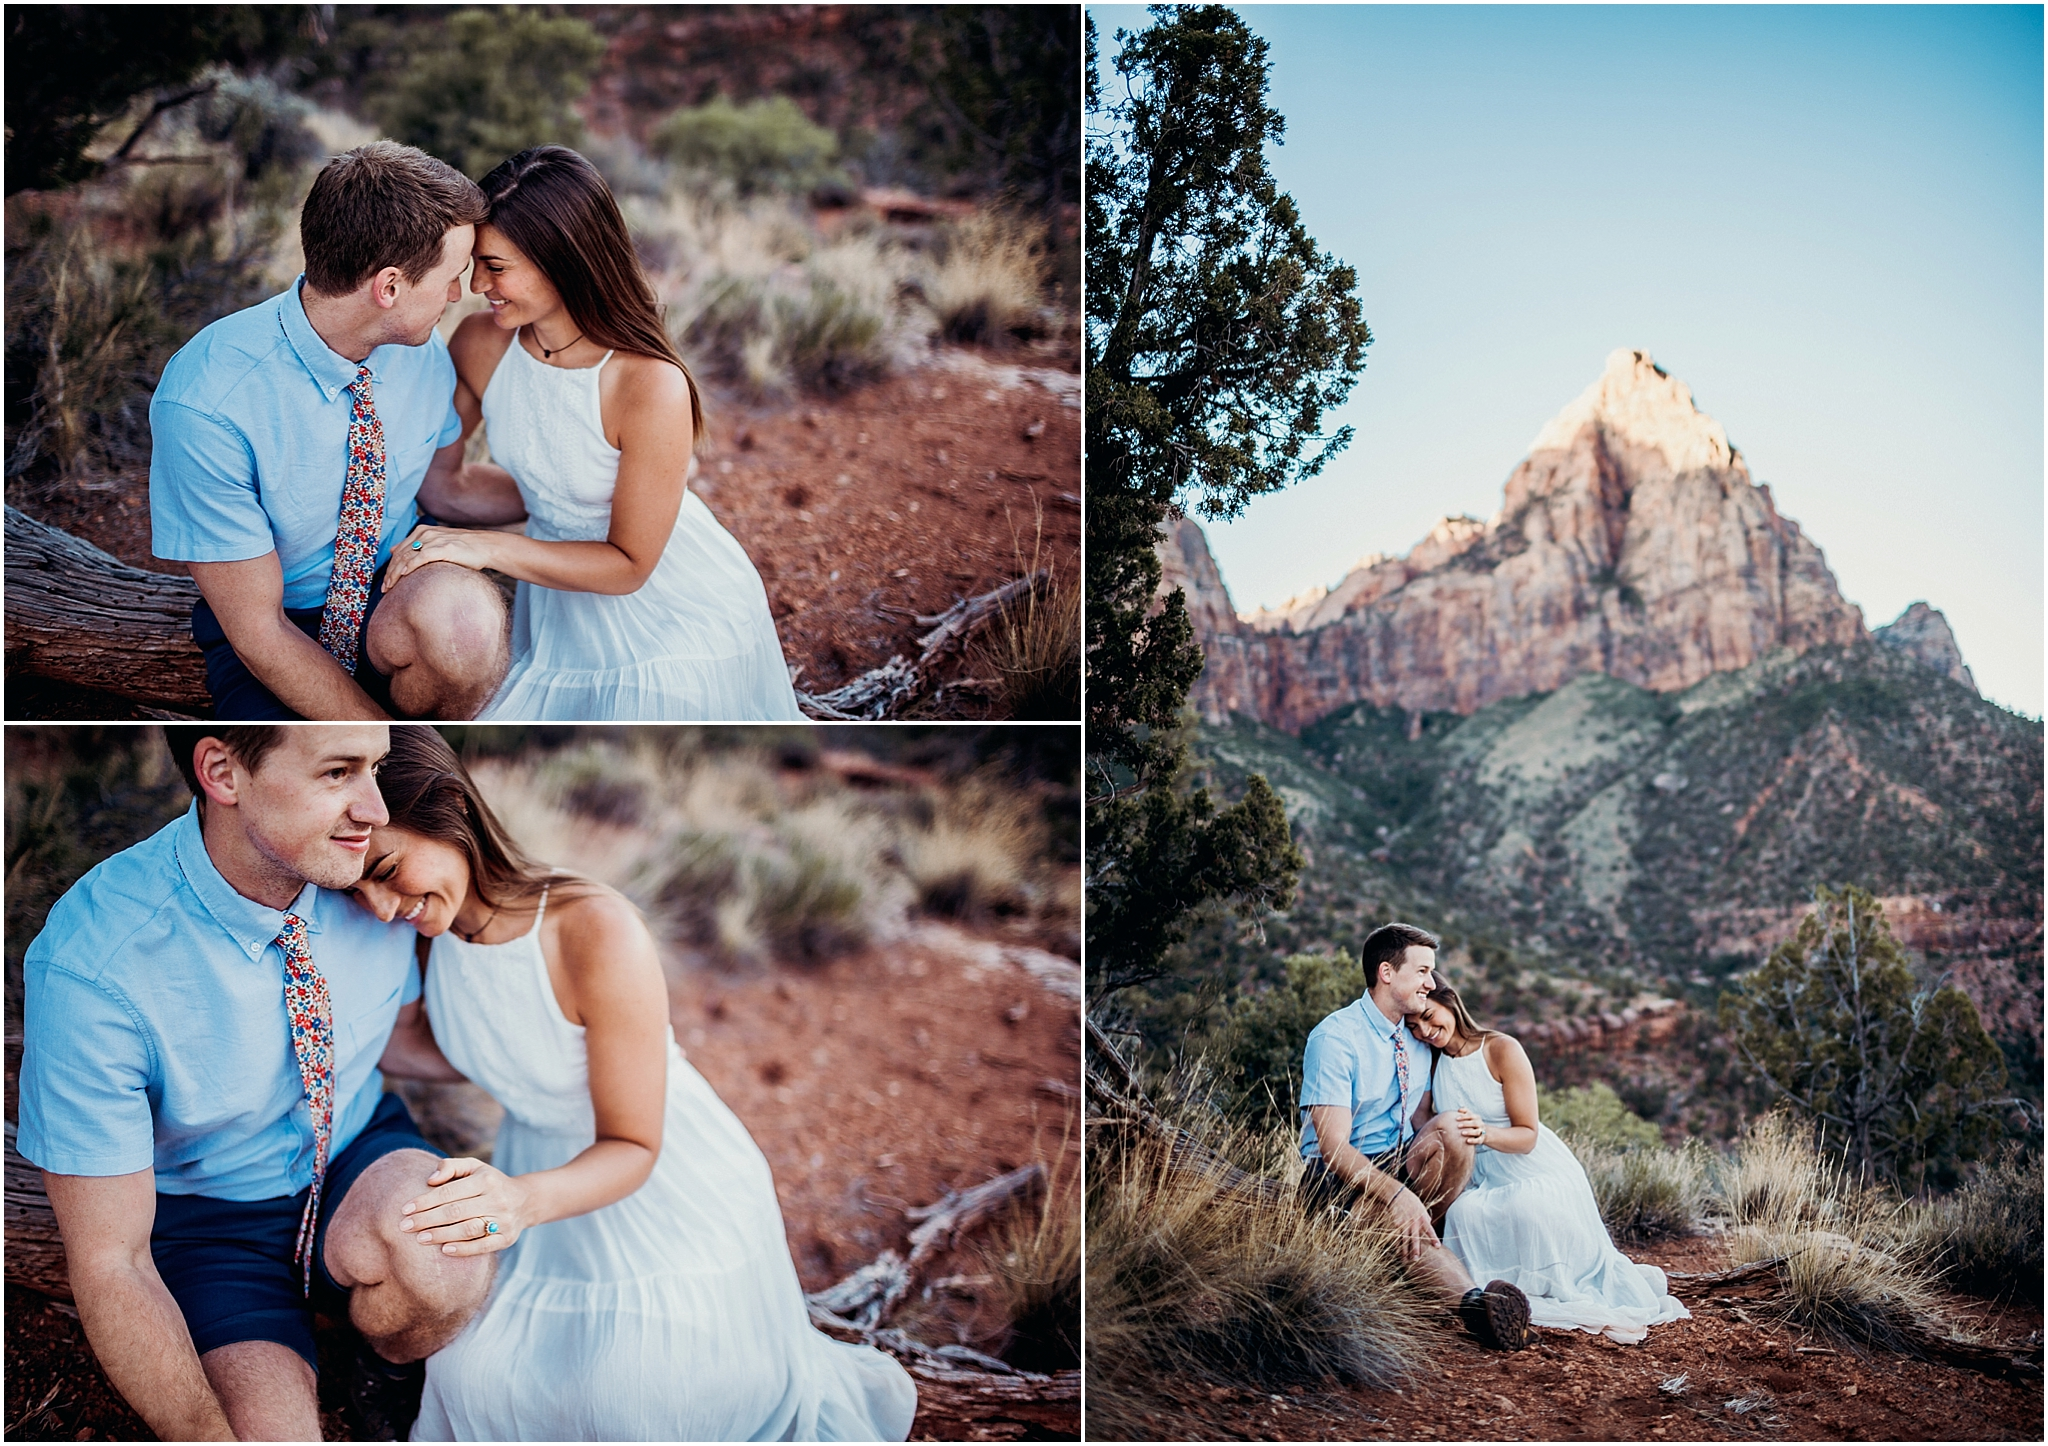 zion national park adventure engagement session zion portraits utah photographer arizona photographer 14.jpg